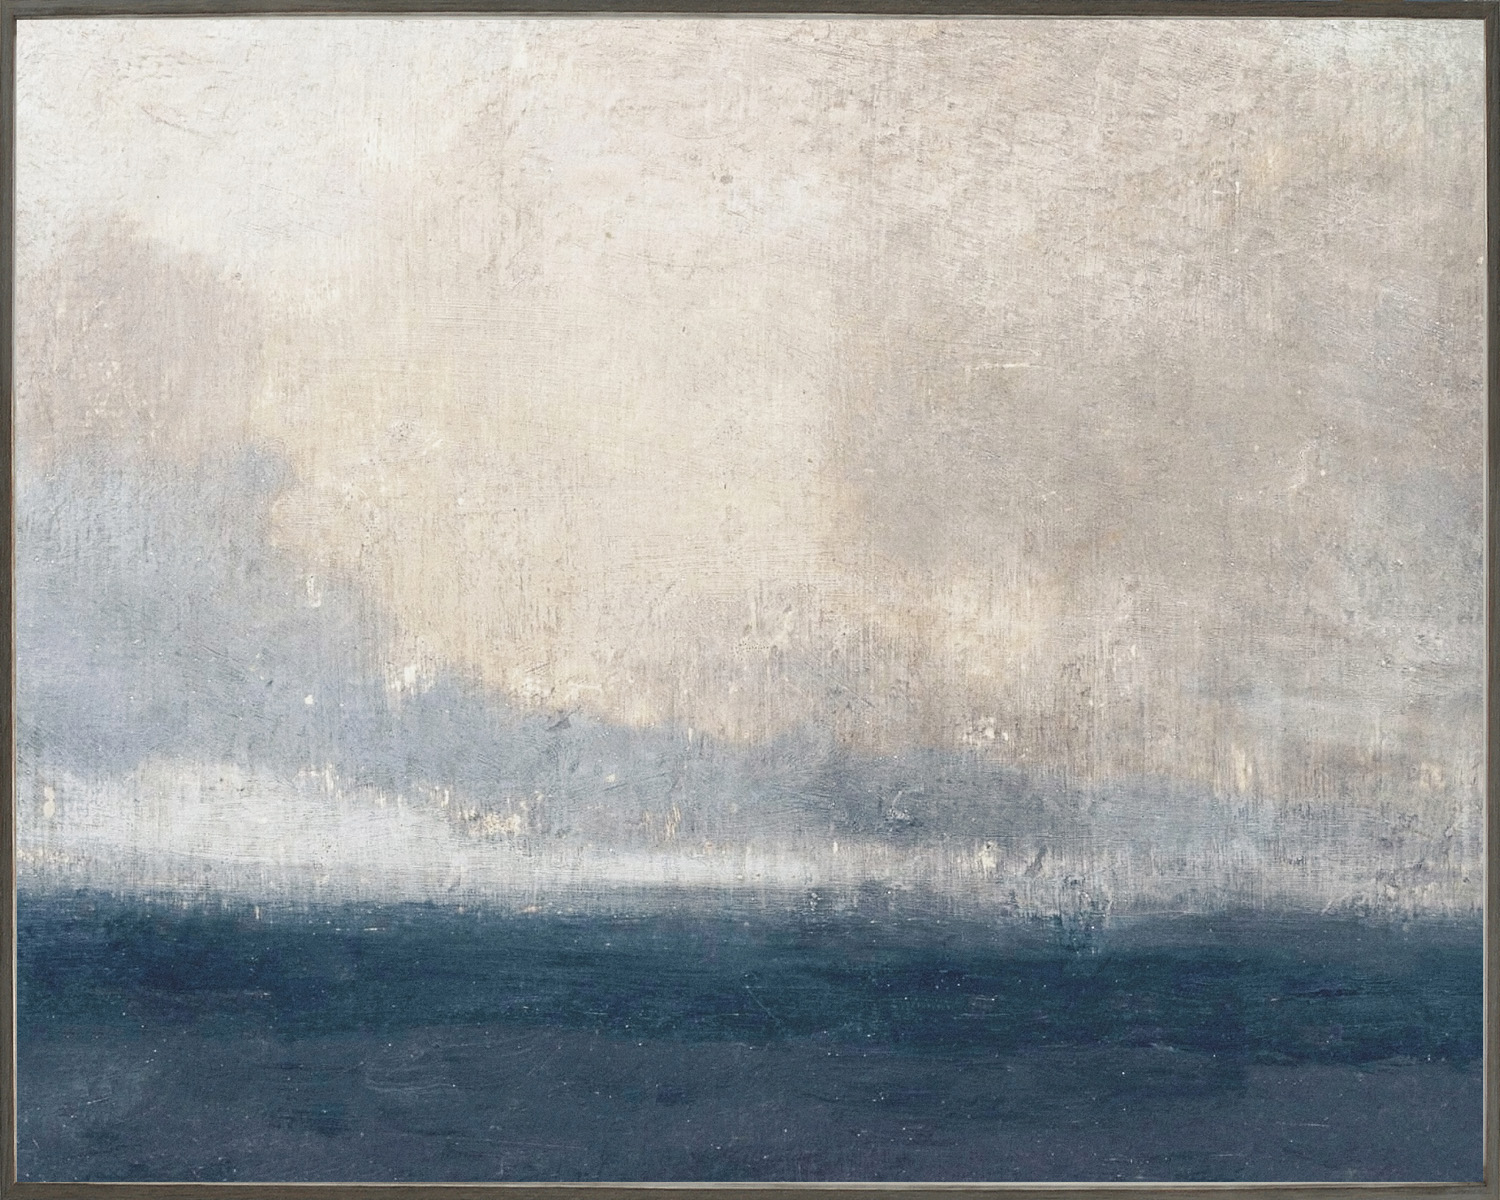 Seascape by Turner